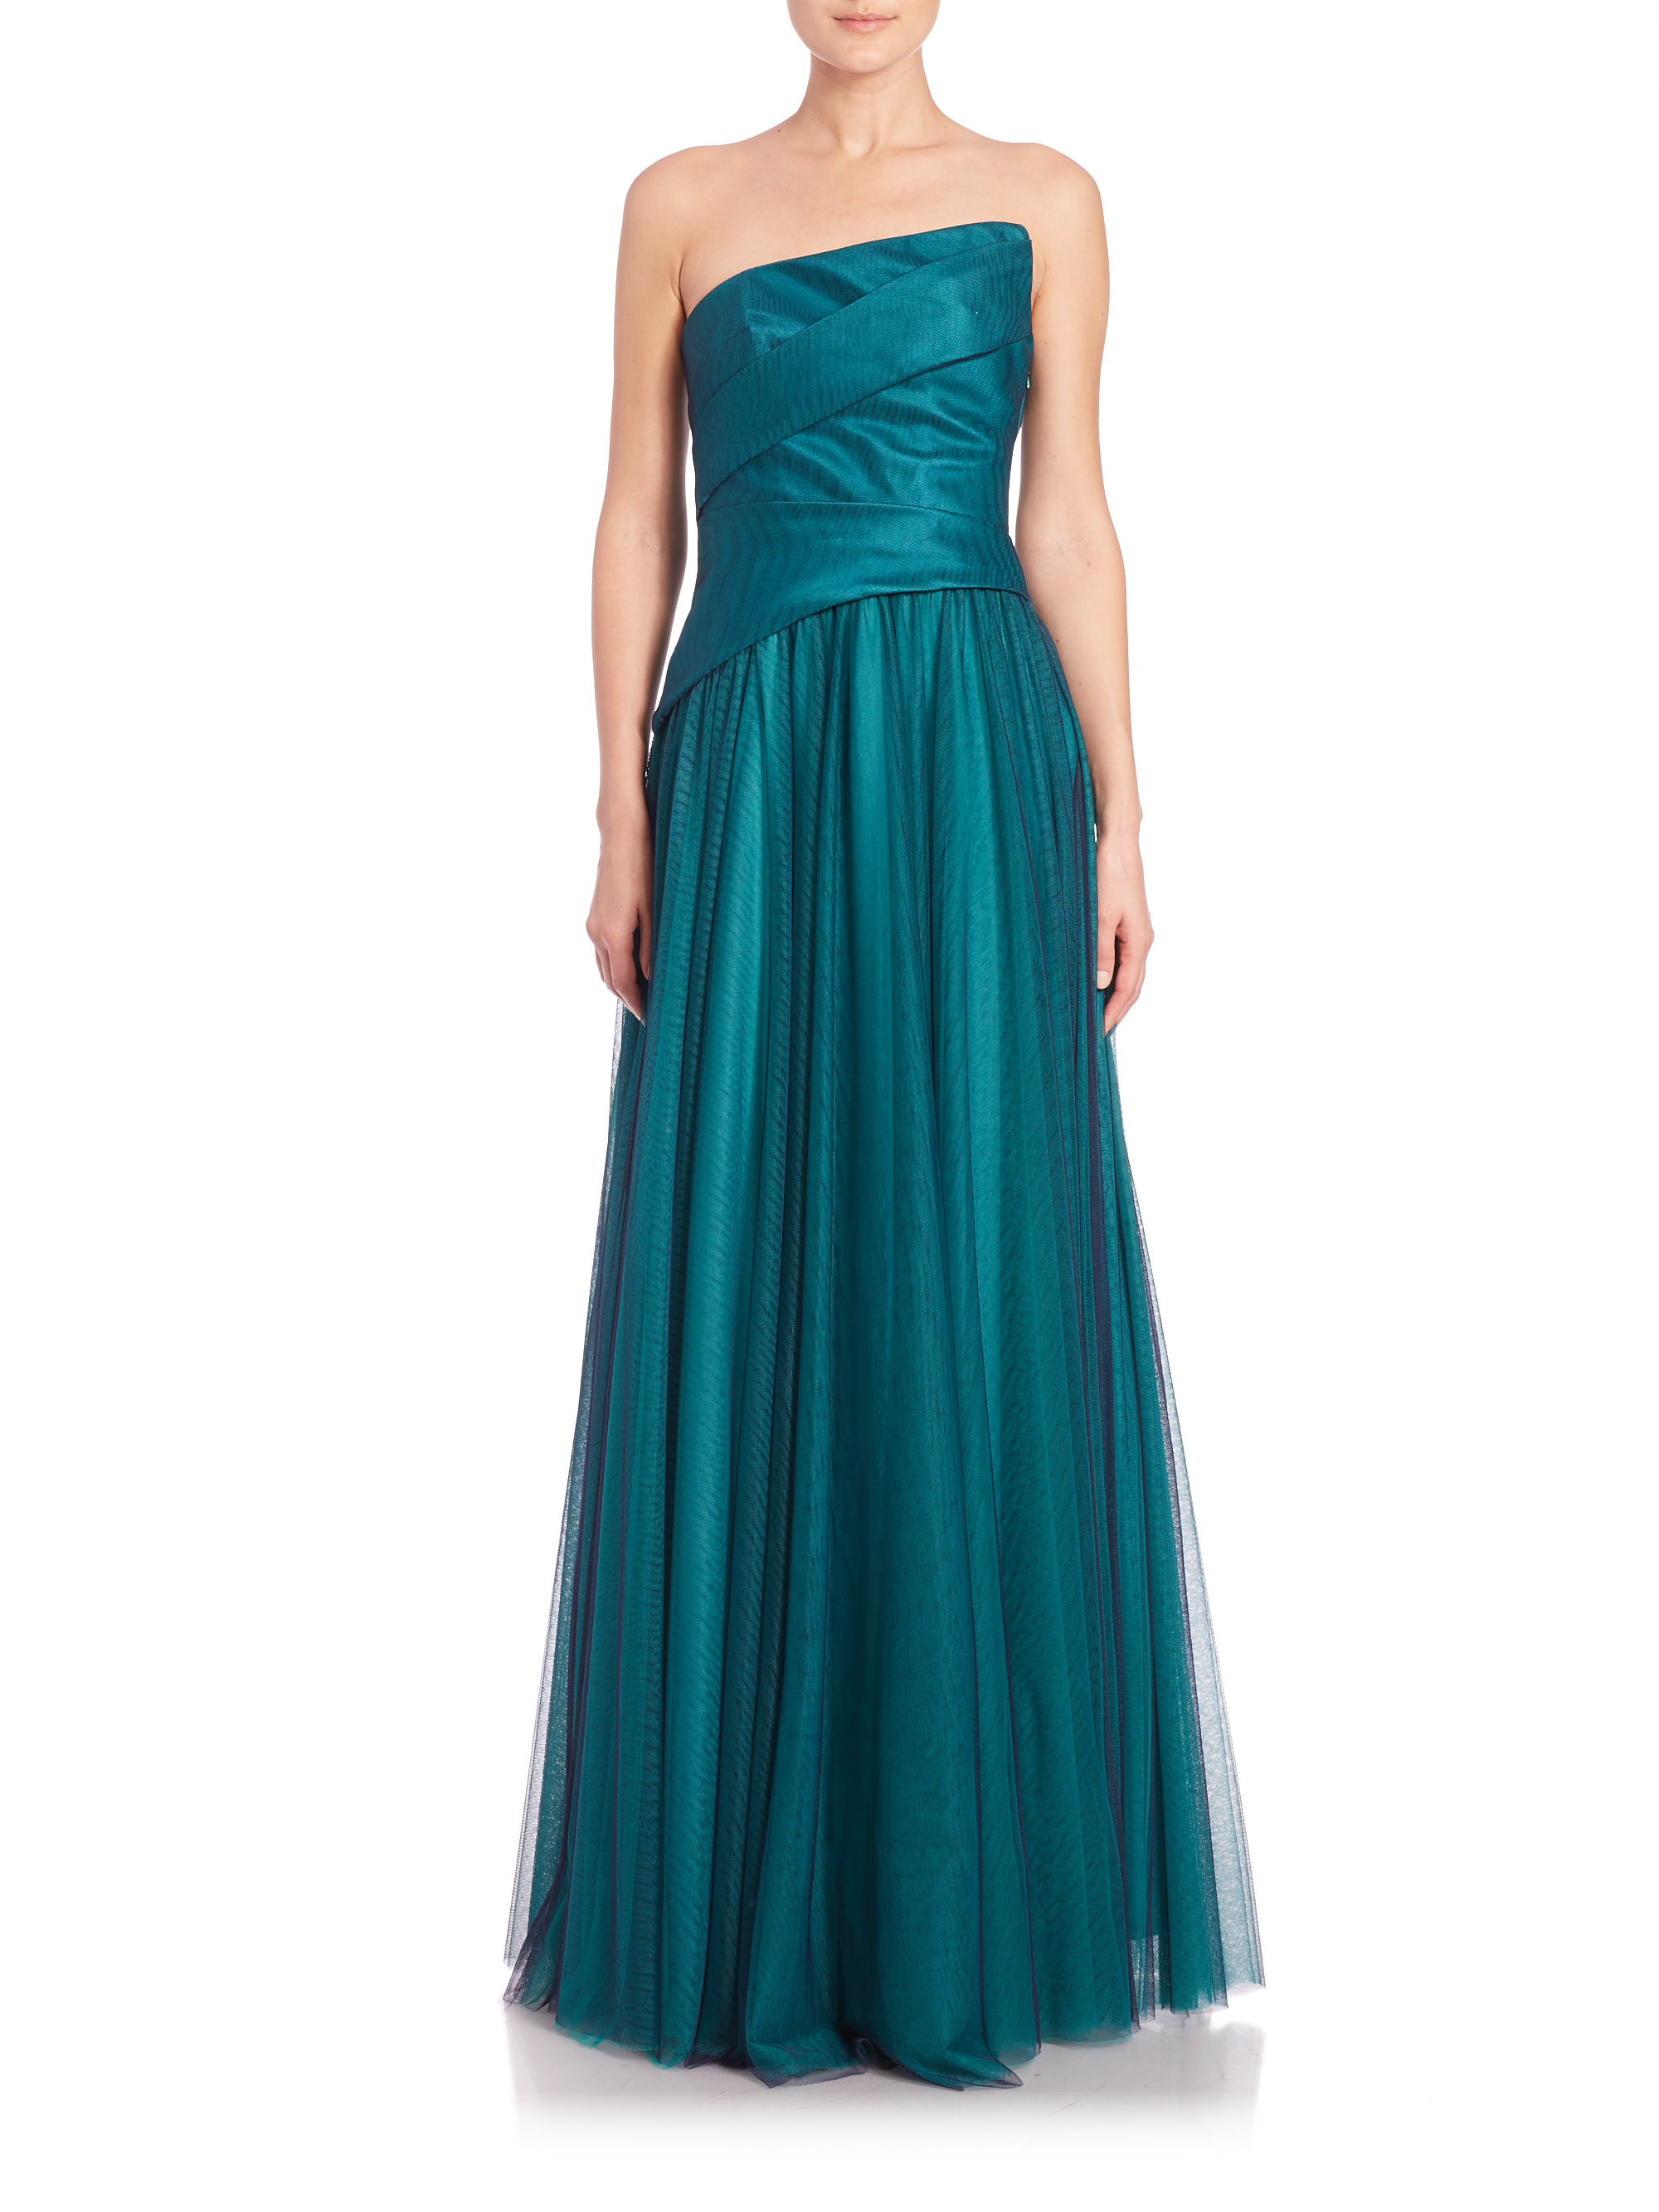 Lyst - Ml Monique Lhuillier Ruched Combo Gown in Blue